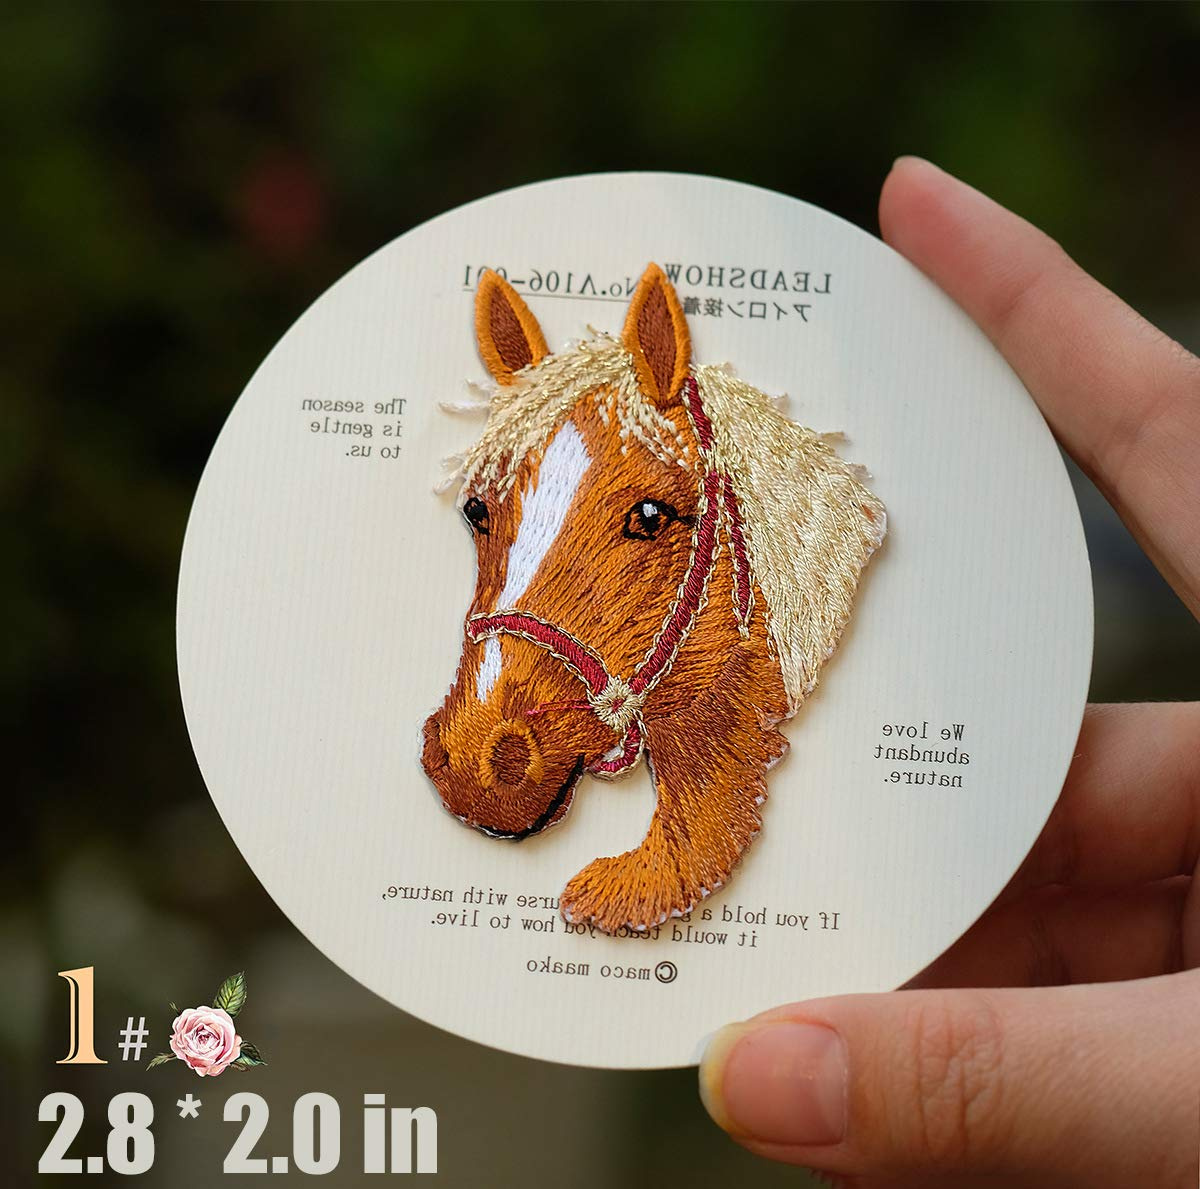 Sew On Applique Patch Cute Embroidery Patches Iron On Patches Kids 2 Pcs Cute Horse Delicate Embroidered Patches Clothes Shirt Decorate Accessory DIY Patchwork Cool Patches for Men Women